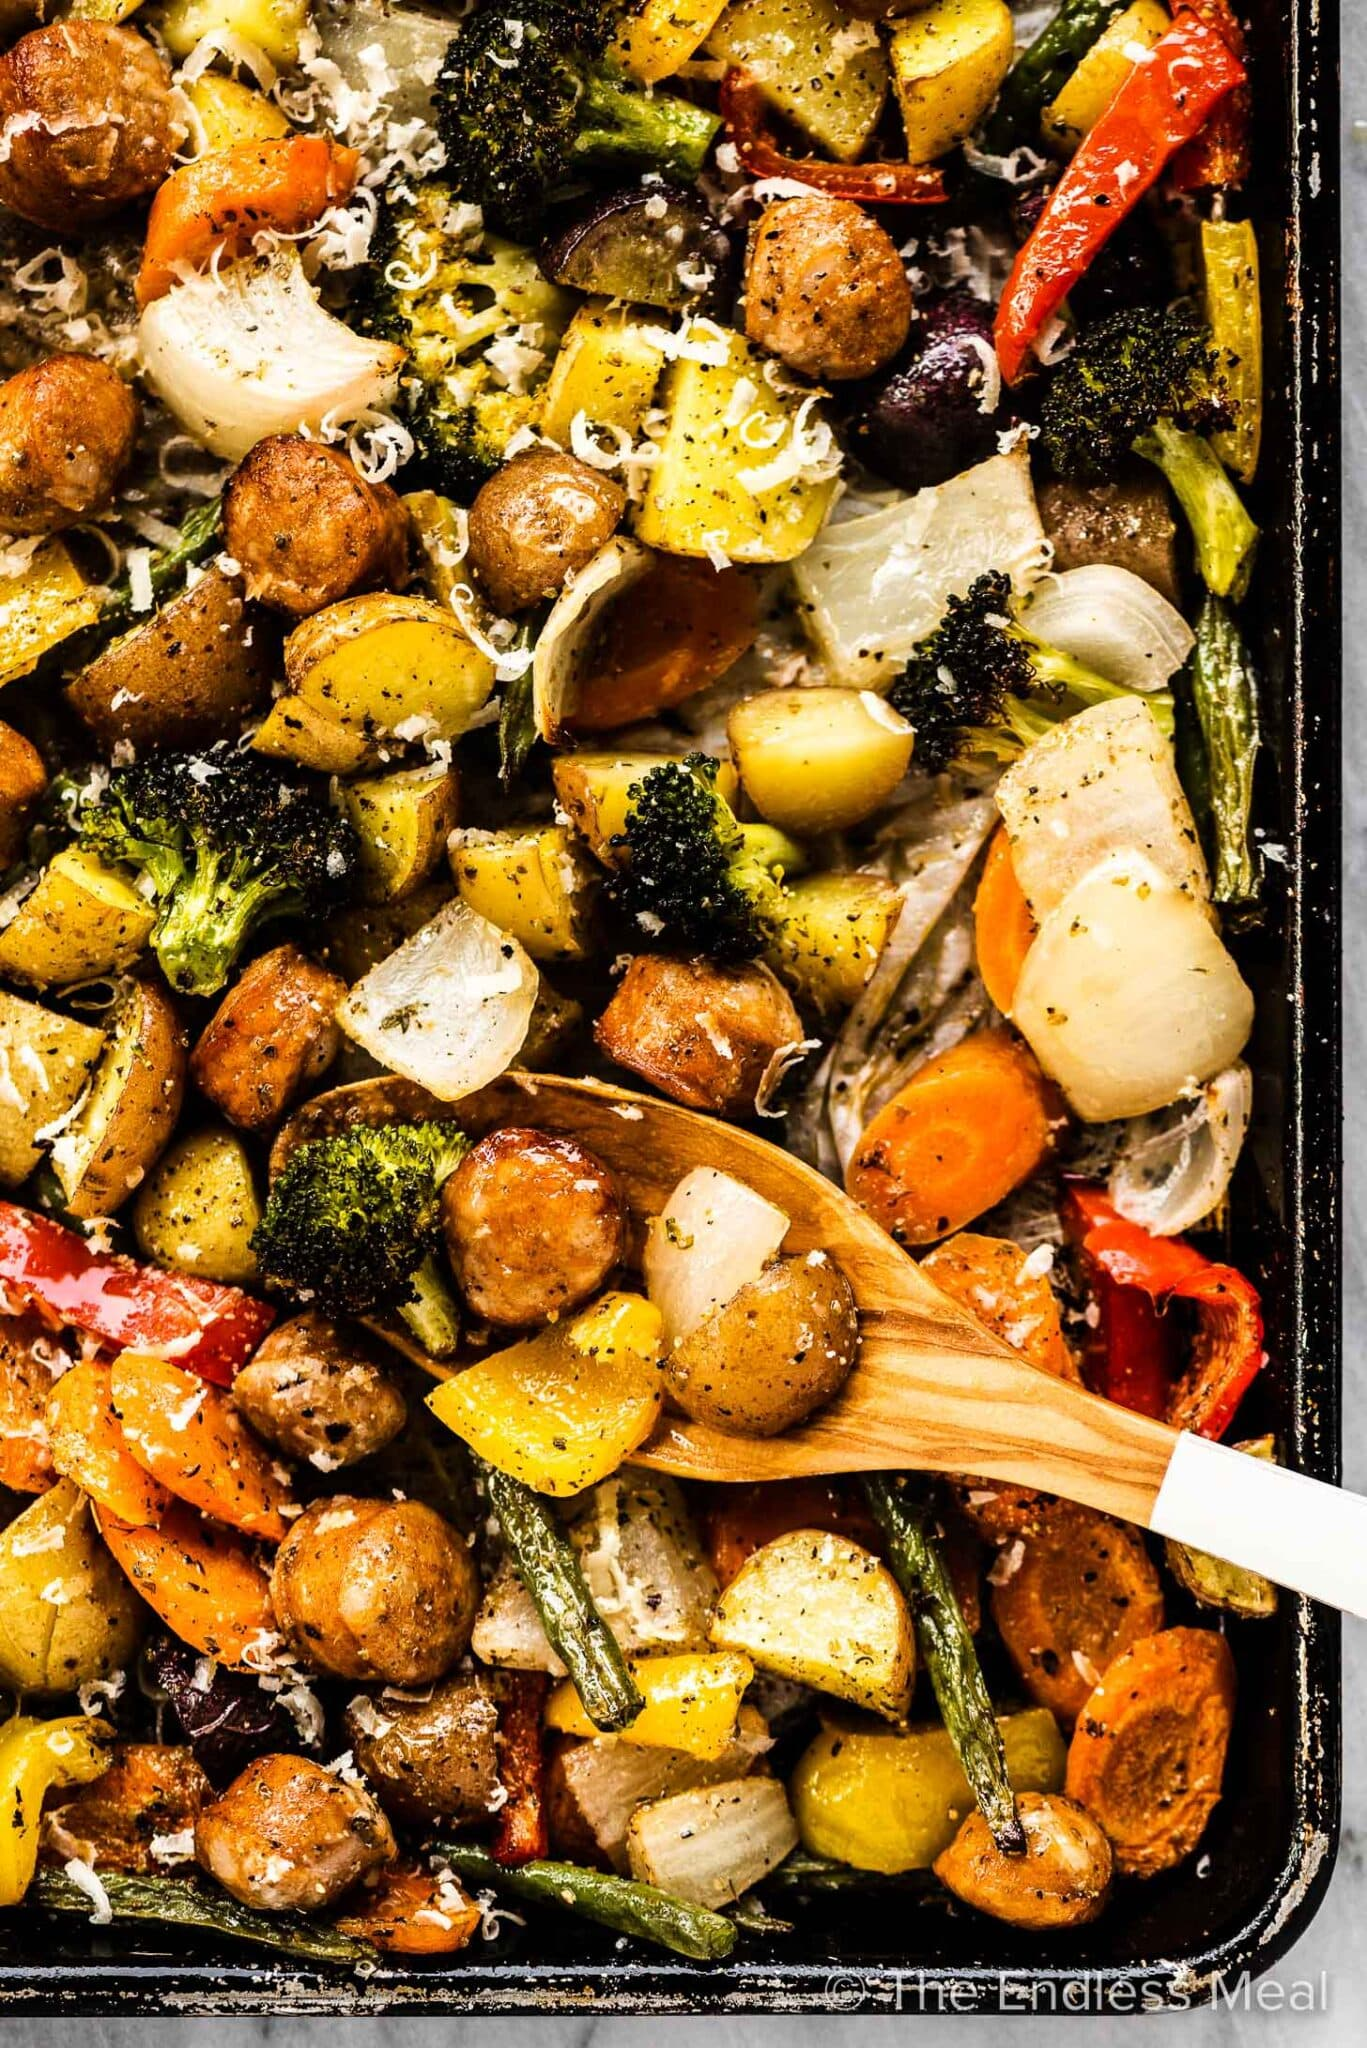 A sheet pan filled with roasted sausages and veggies.